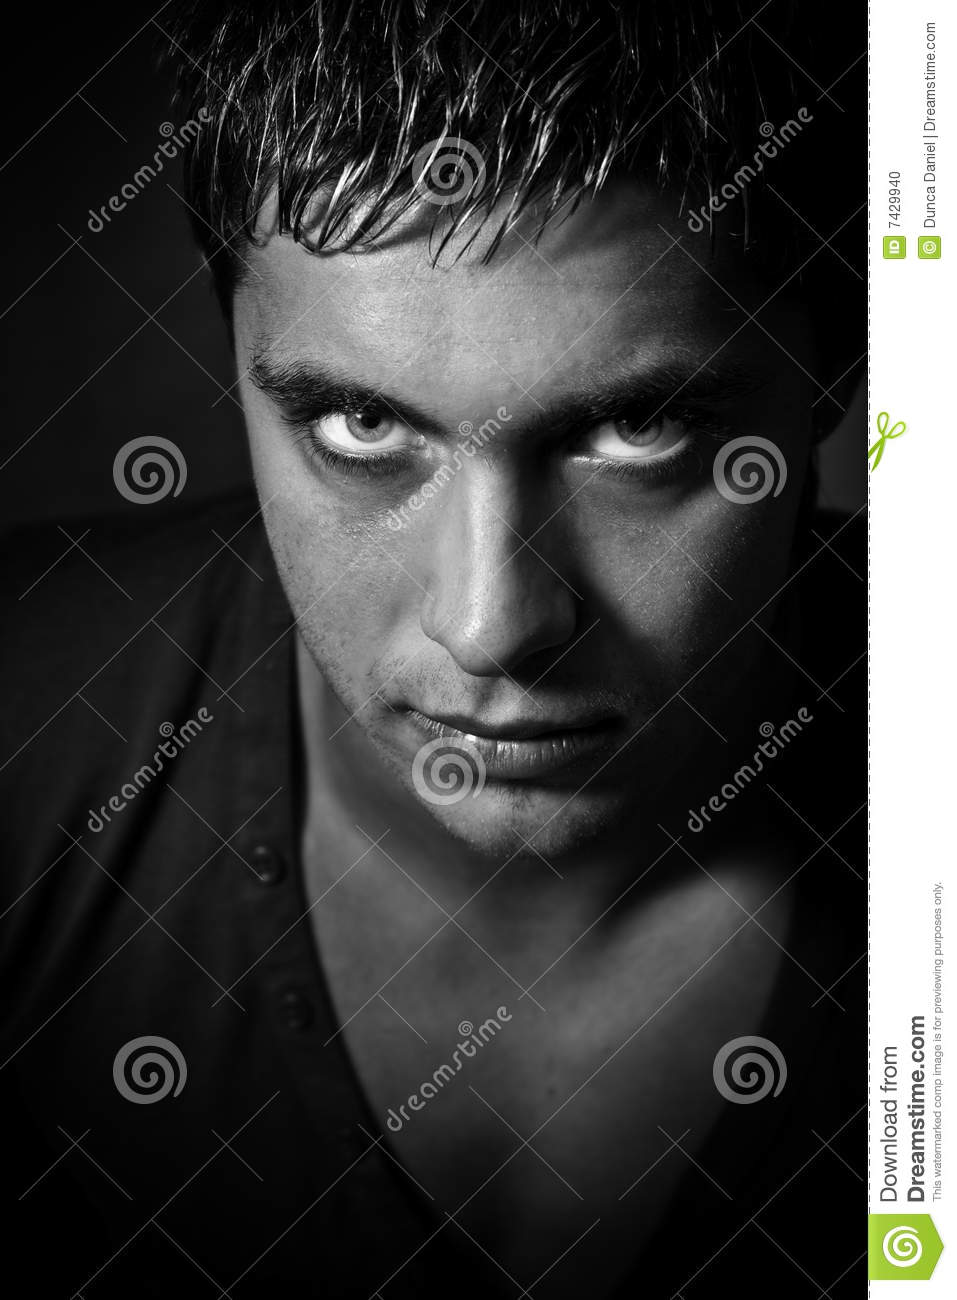 Man with evil scary eyes